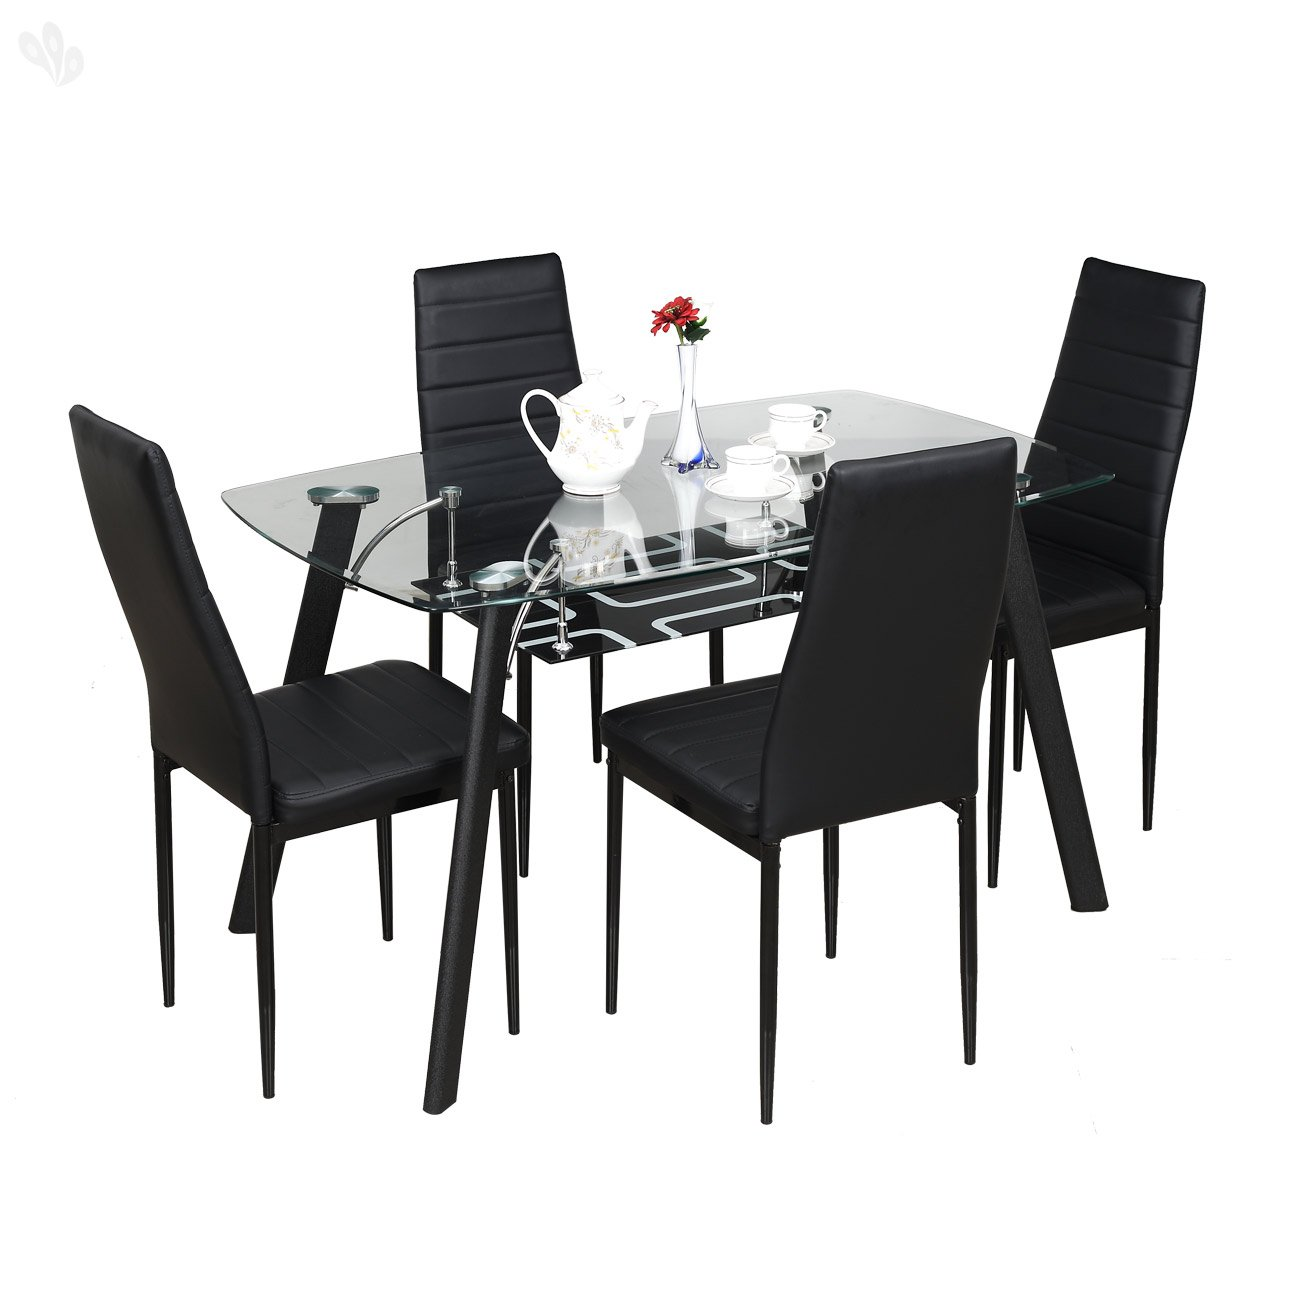 royal oak milan four seater dining table set black. Black Bedroom Furniture Sets. Home Design Ideas